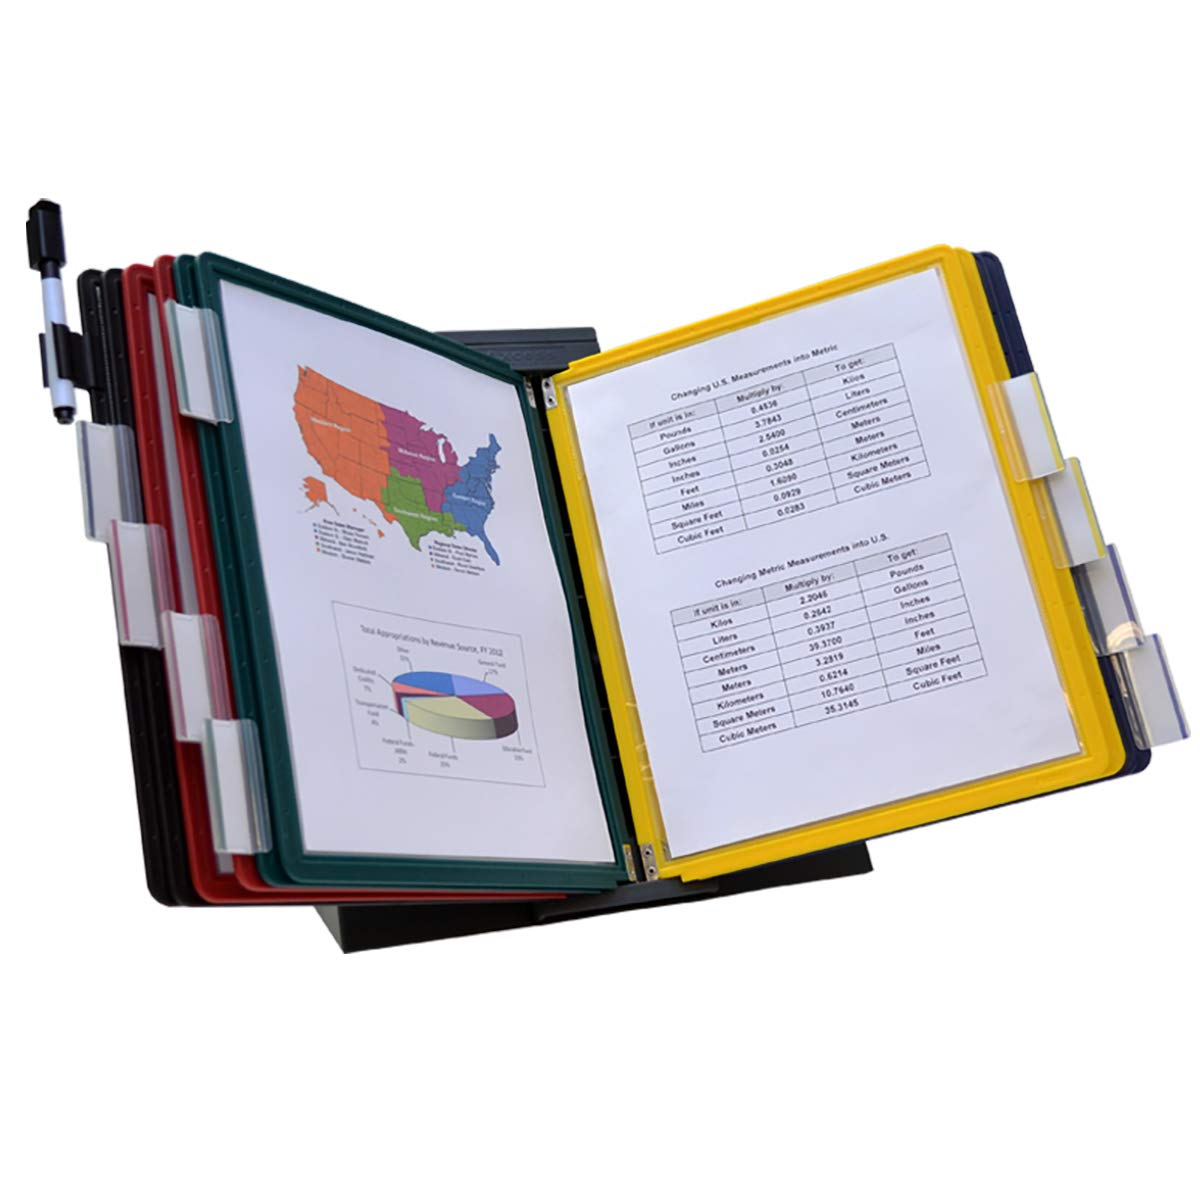 Ultimate Office DocuMate 20-Pocket Desk Reference Organizer with Assorted Color Easy-Load Pockets Steel-Reinforced Pins and Free Bonus Panel